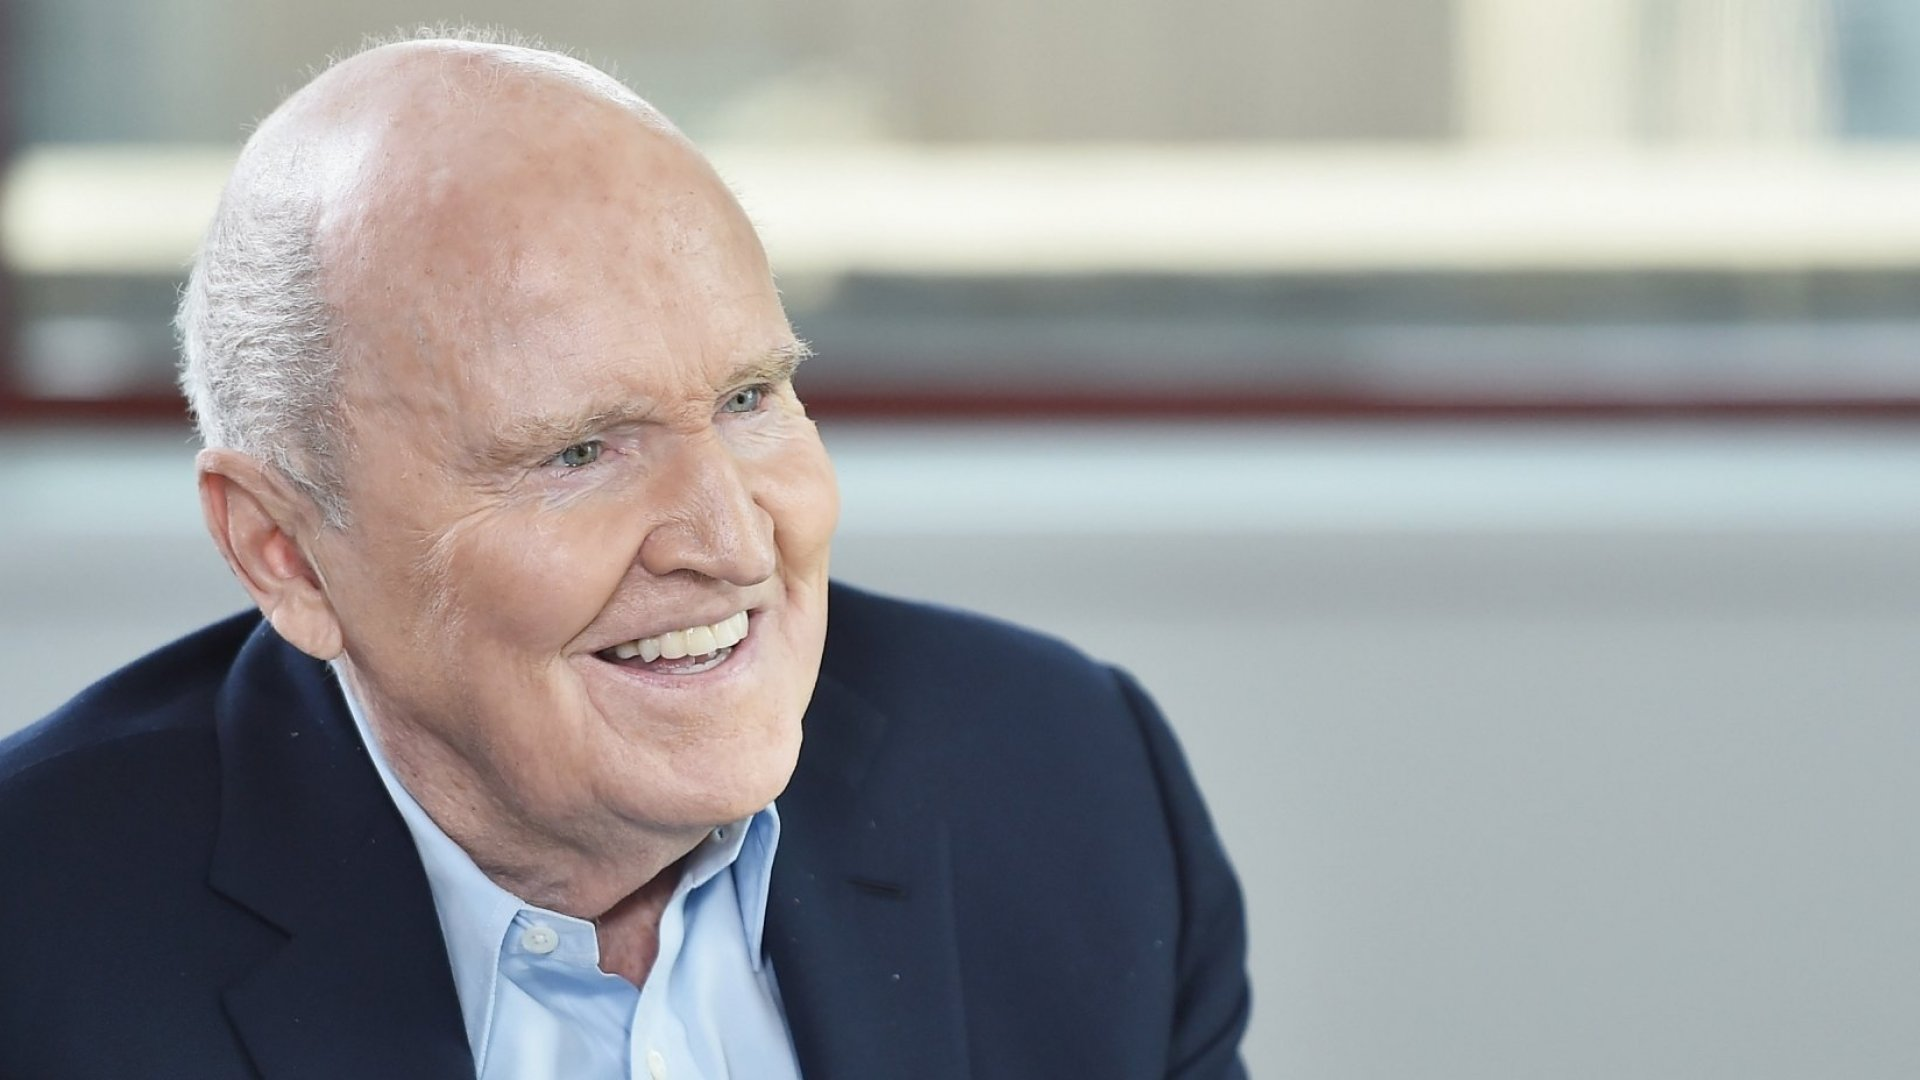 5 Unforgettable Leadership Lessons From 'Manager of the Century' Jack Welch